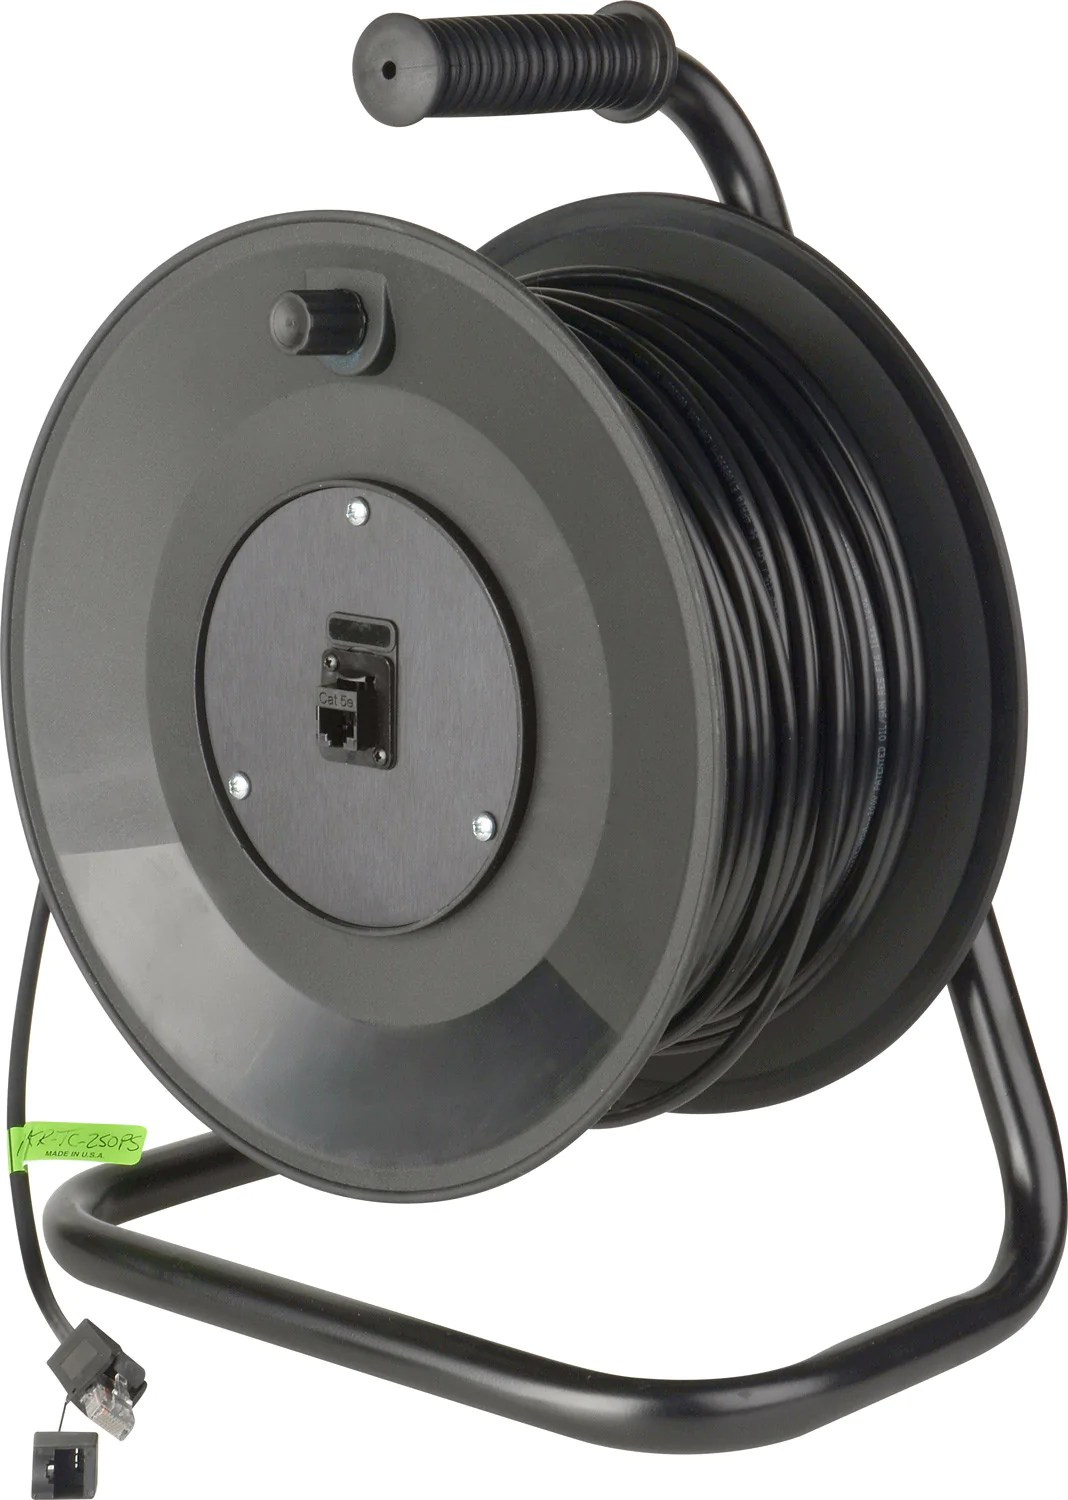 small resolution of buy cable reel connect n go reel belden 7923a cat5e with pro shell connectors 250ft